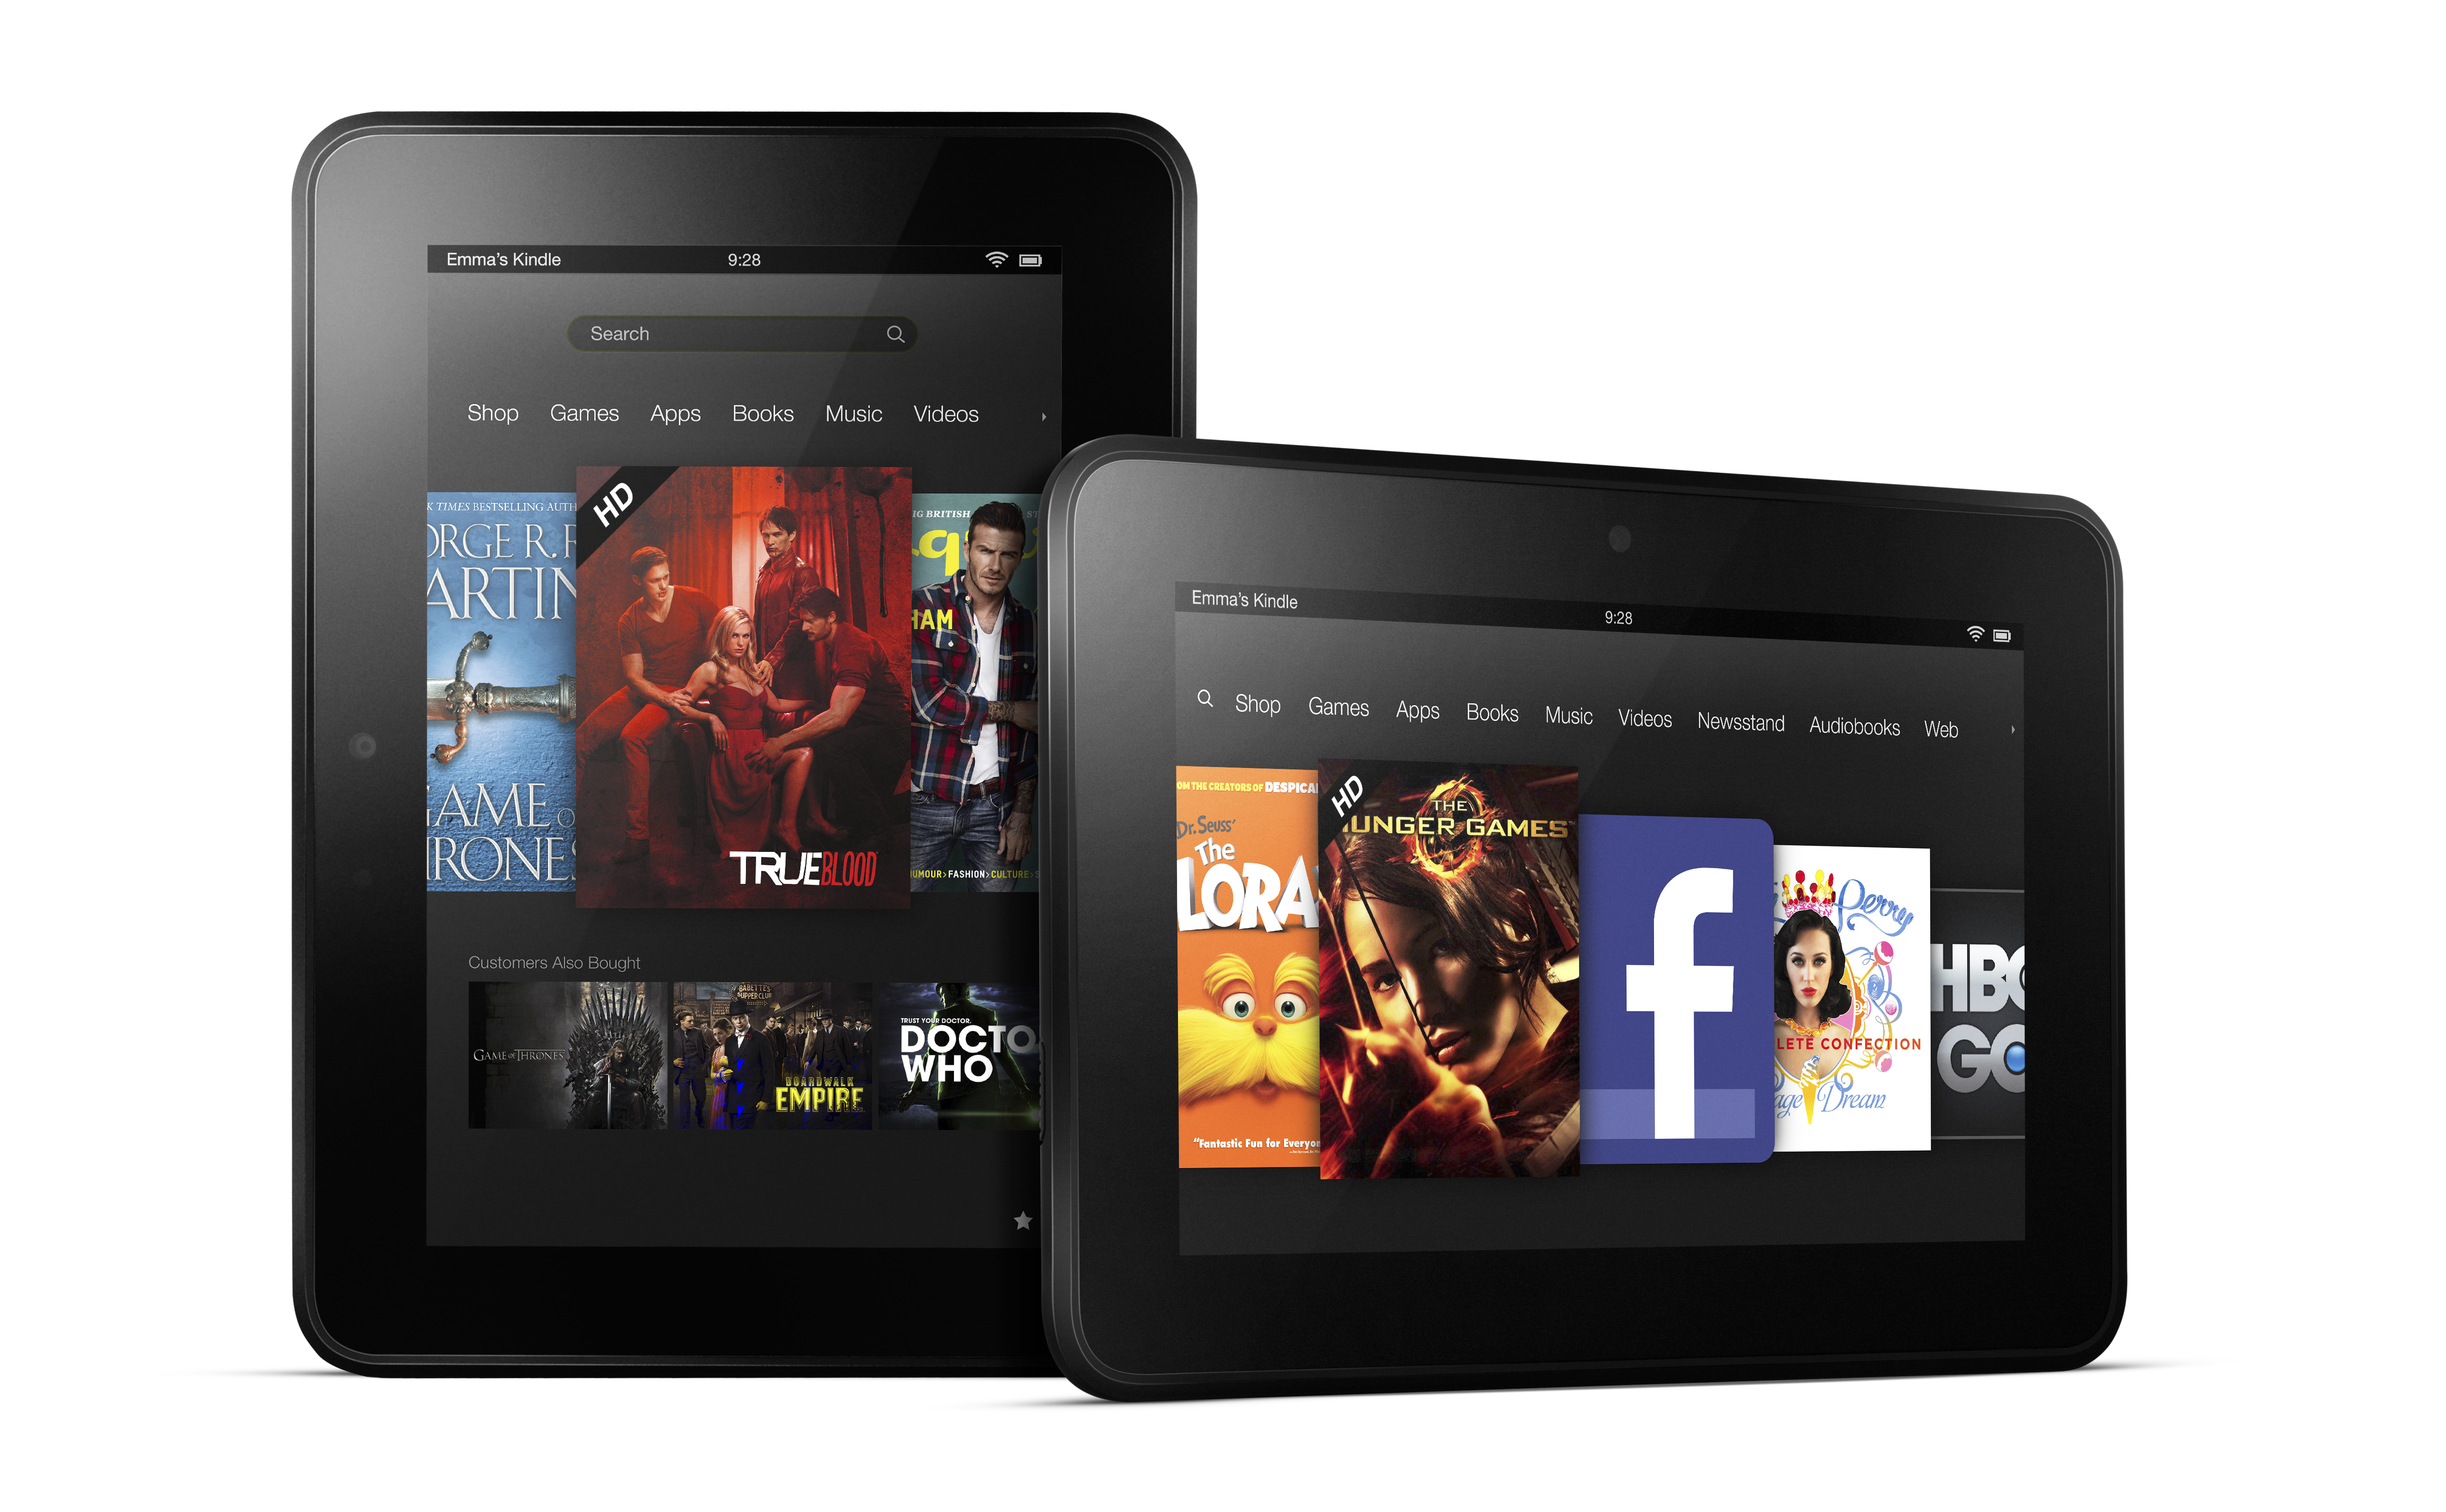 Kindle Fire HD 7jpeg 5108x3158